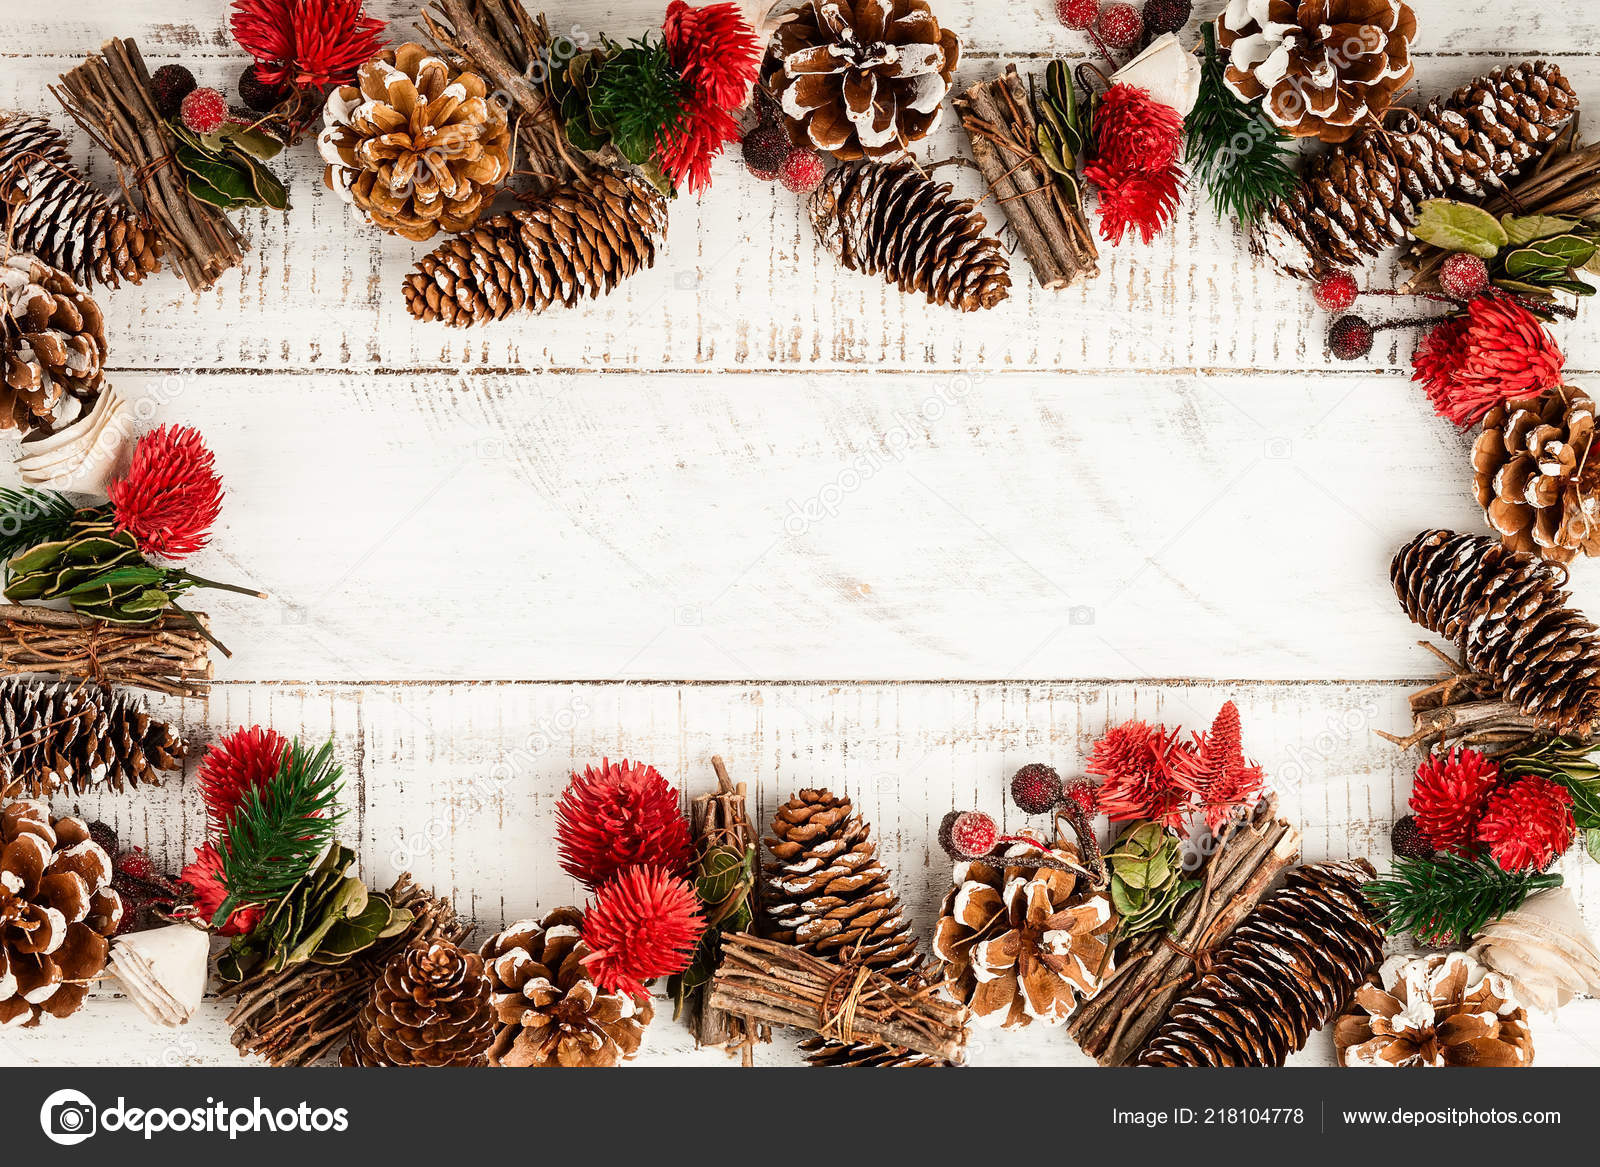 Winter Background Rustic Christmas Garland Using Pine Cones Dried Leaves Stock Photo Image By C Sarsmis 218104778